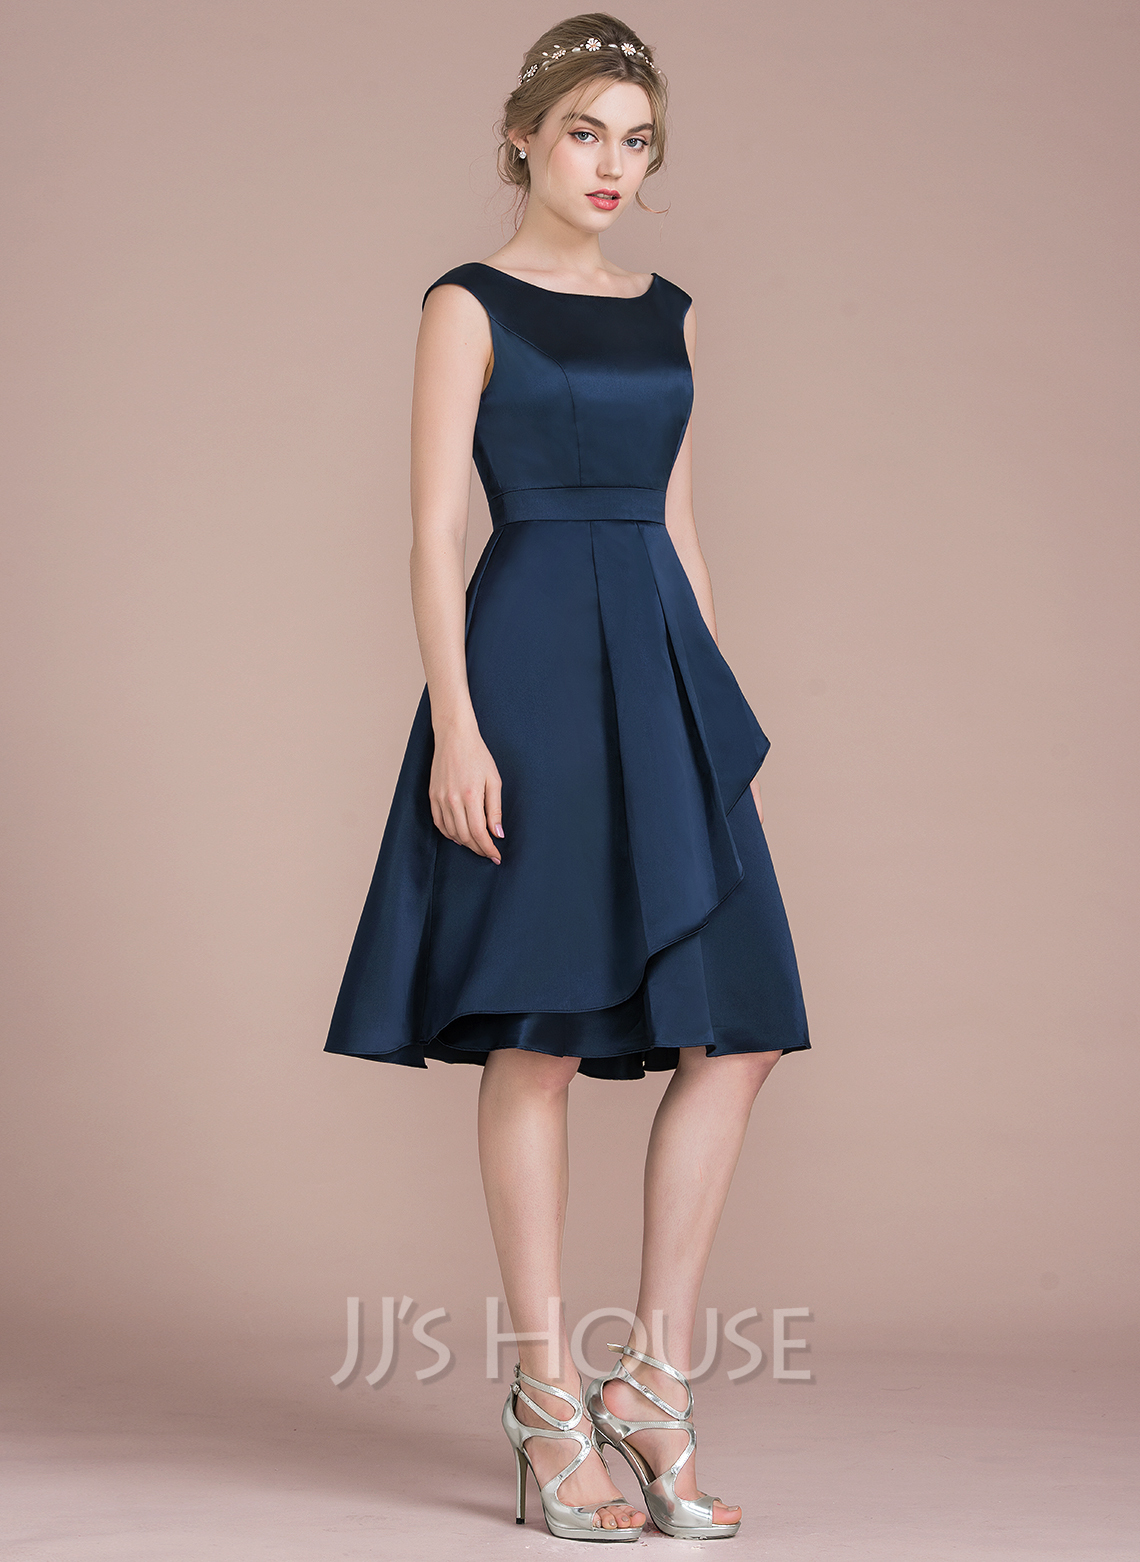 ee6f4cce7c94 A-Line/Princess Scoop Neck Knee-Length Satin Bridesmaid Dress With  Cascading Ruffles. Loading zoom